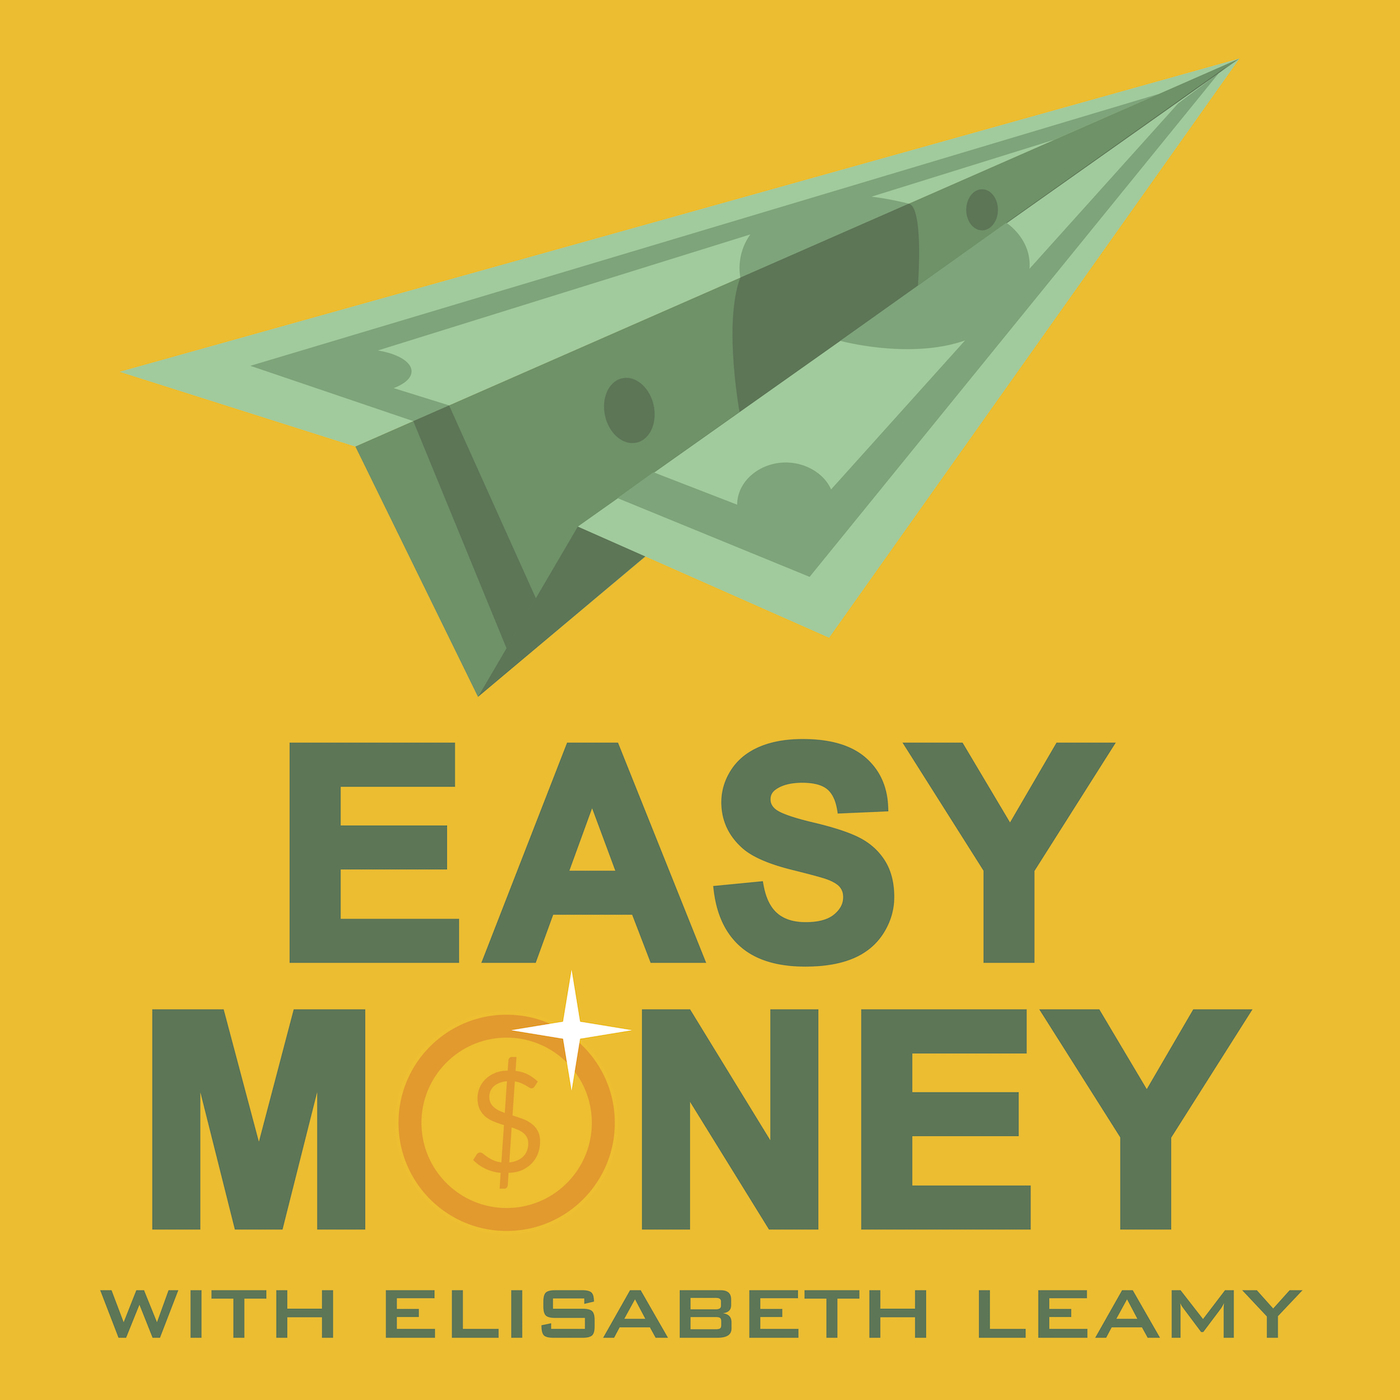 Easy Money with Elisabeth Leamy by District Productive on Apple Podcasts